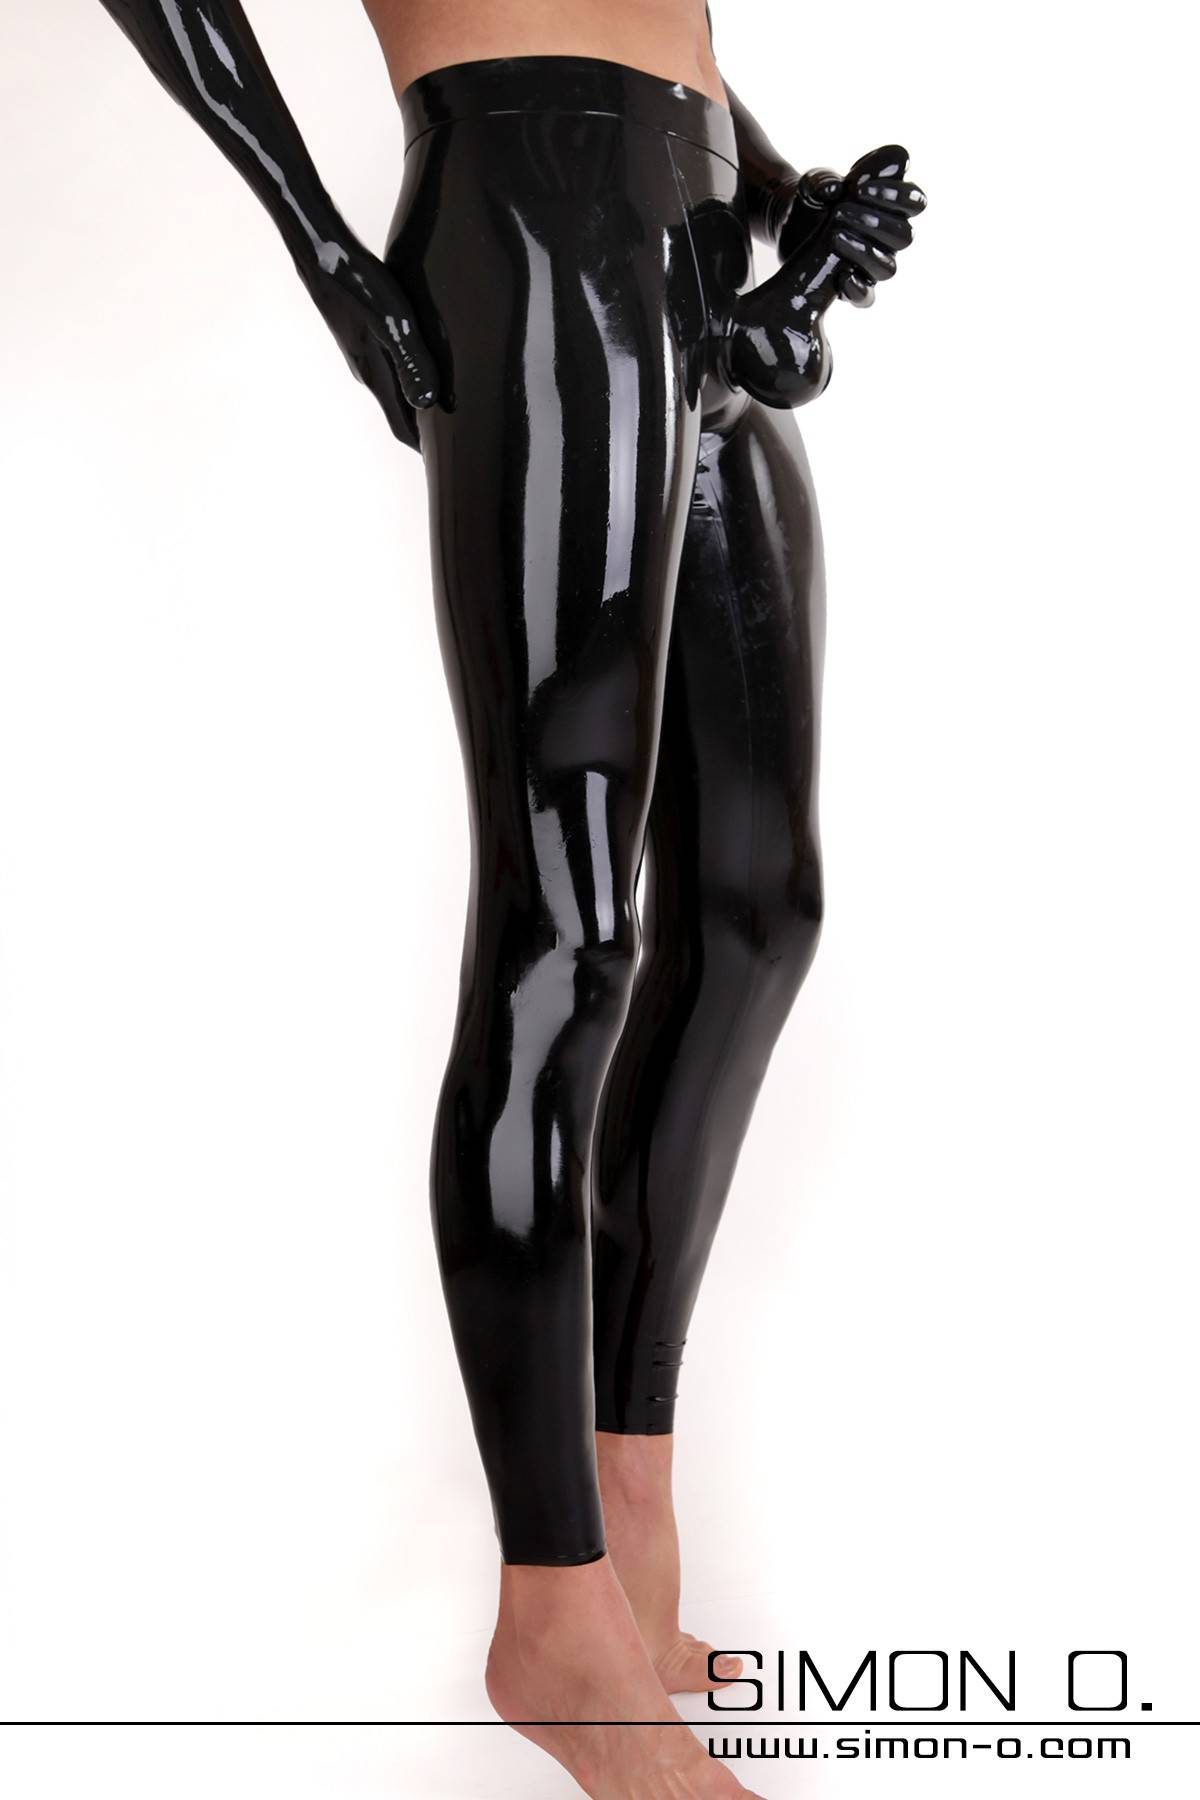 A man wears a skintight latex leggings in black with condom and latex gloves in black